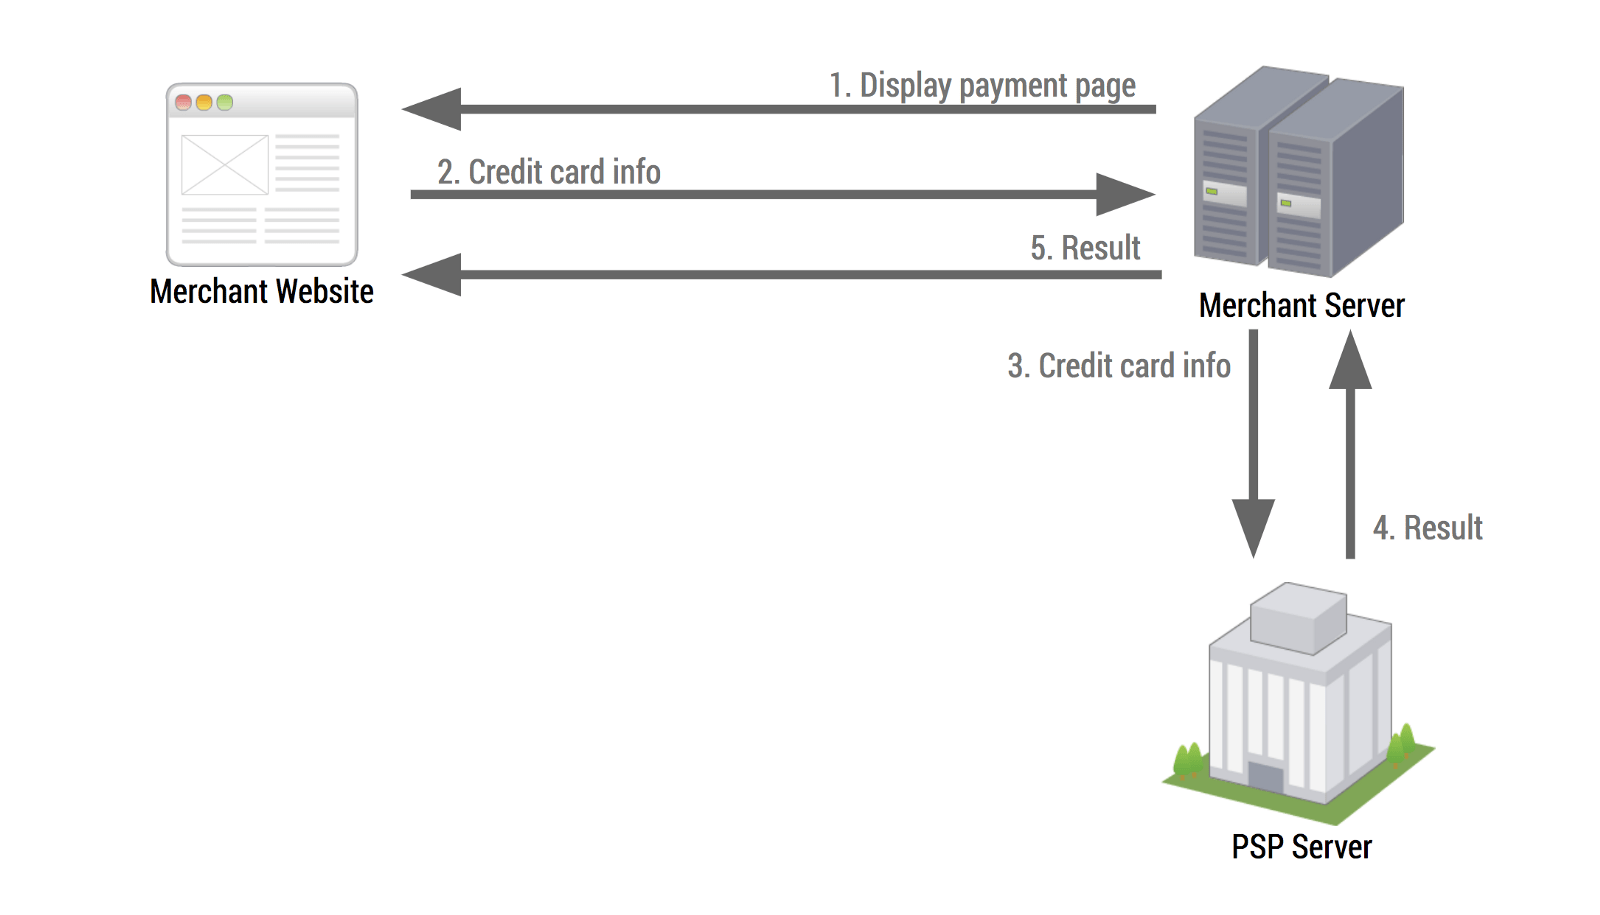 the merchant submits a credit card transaction to the authorizenet